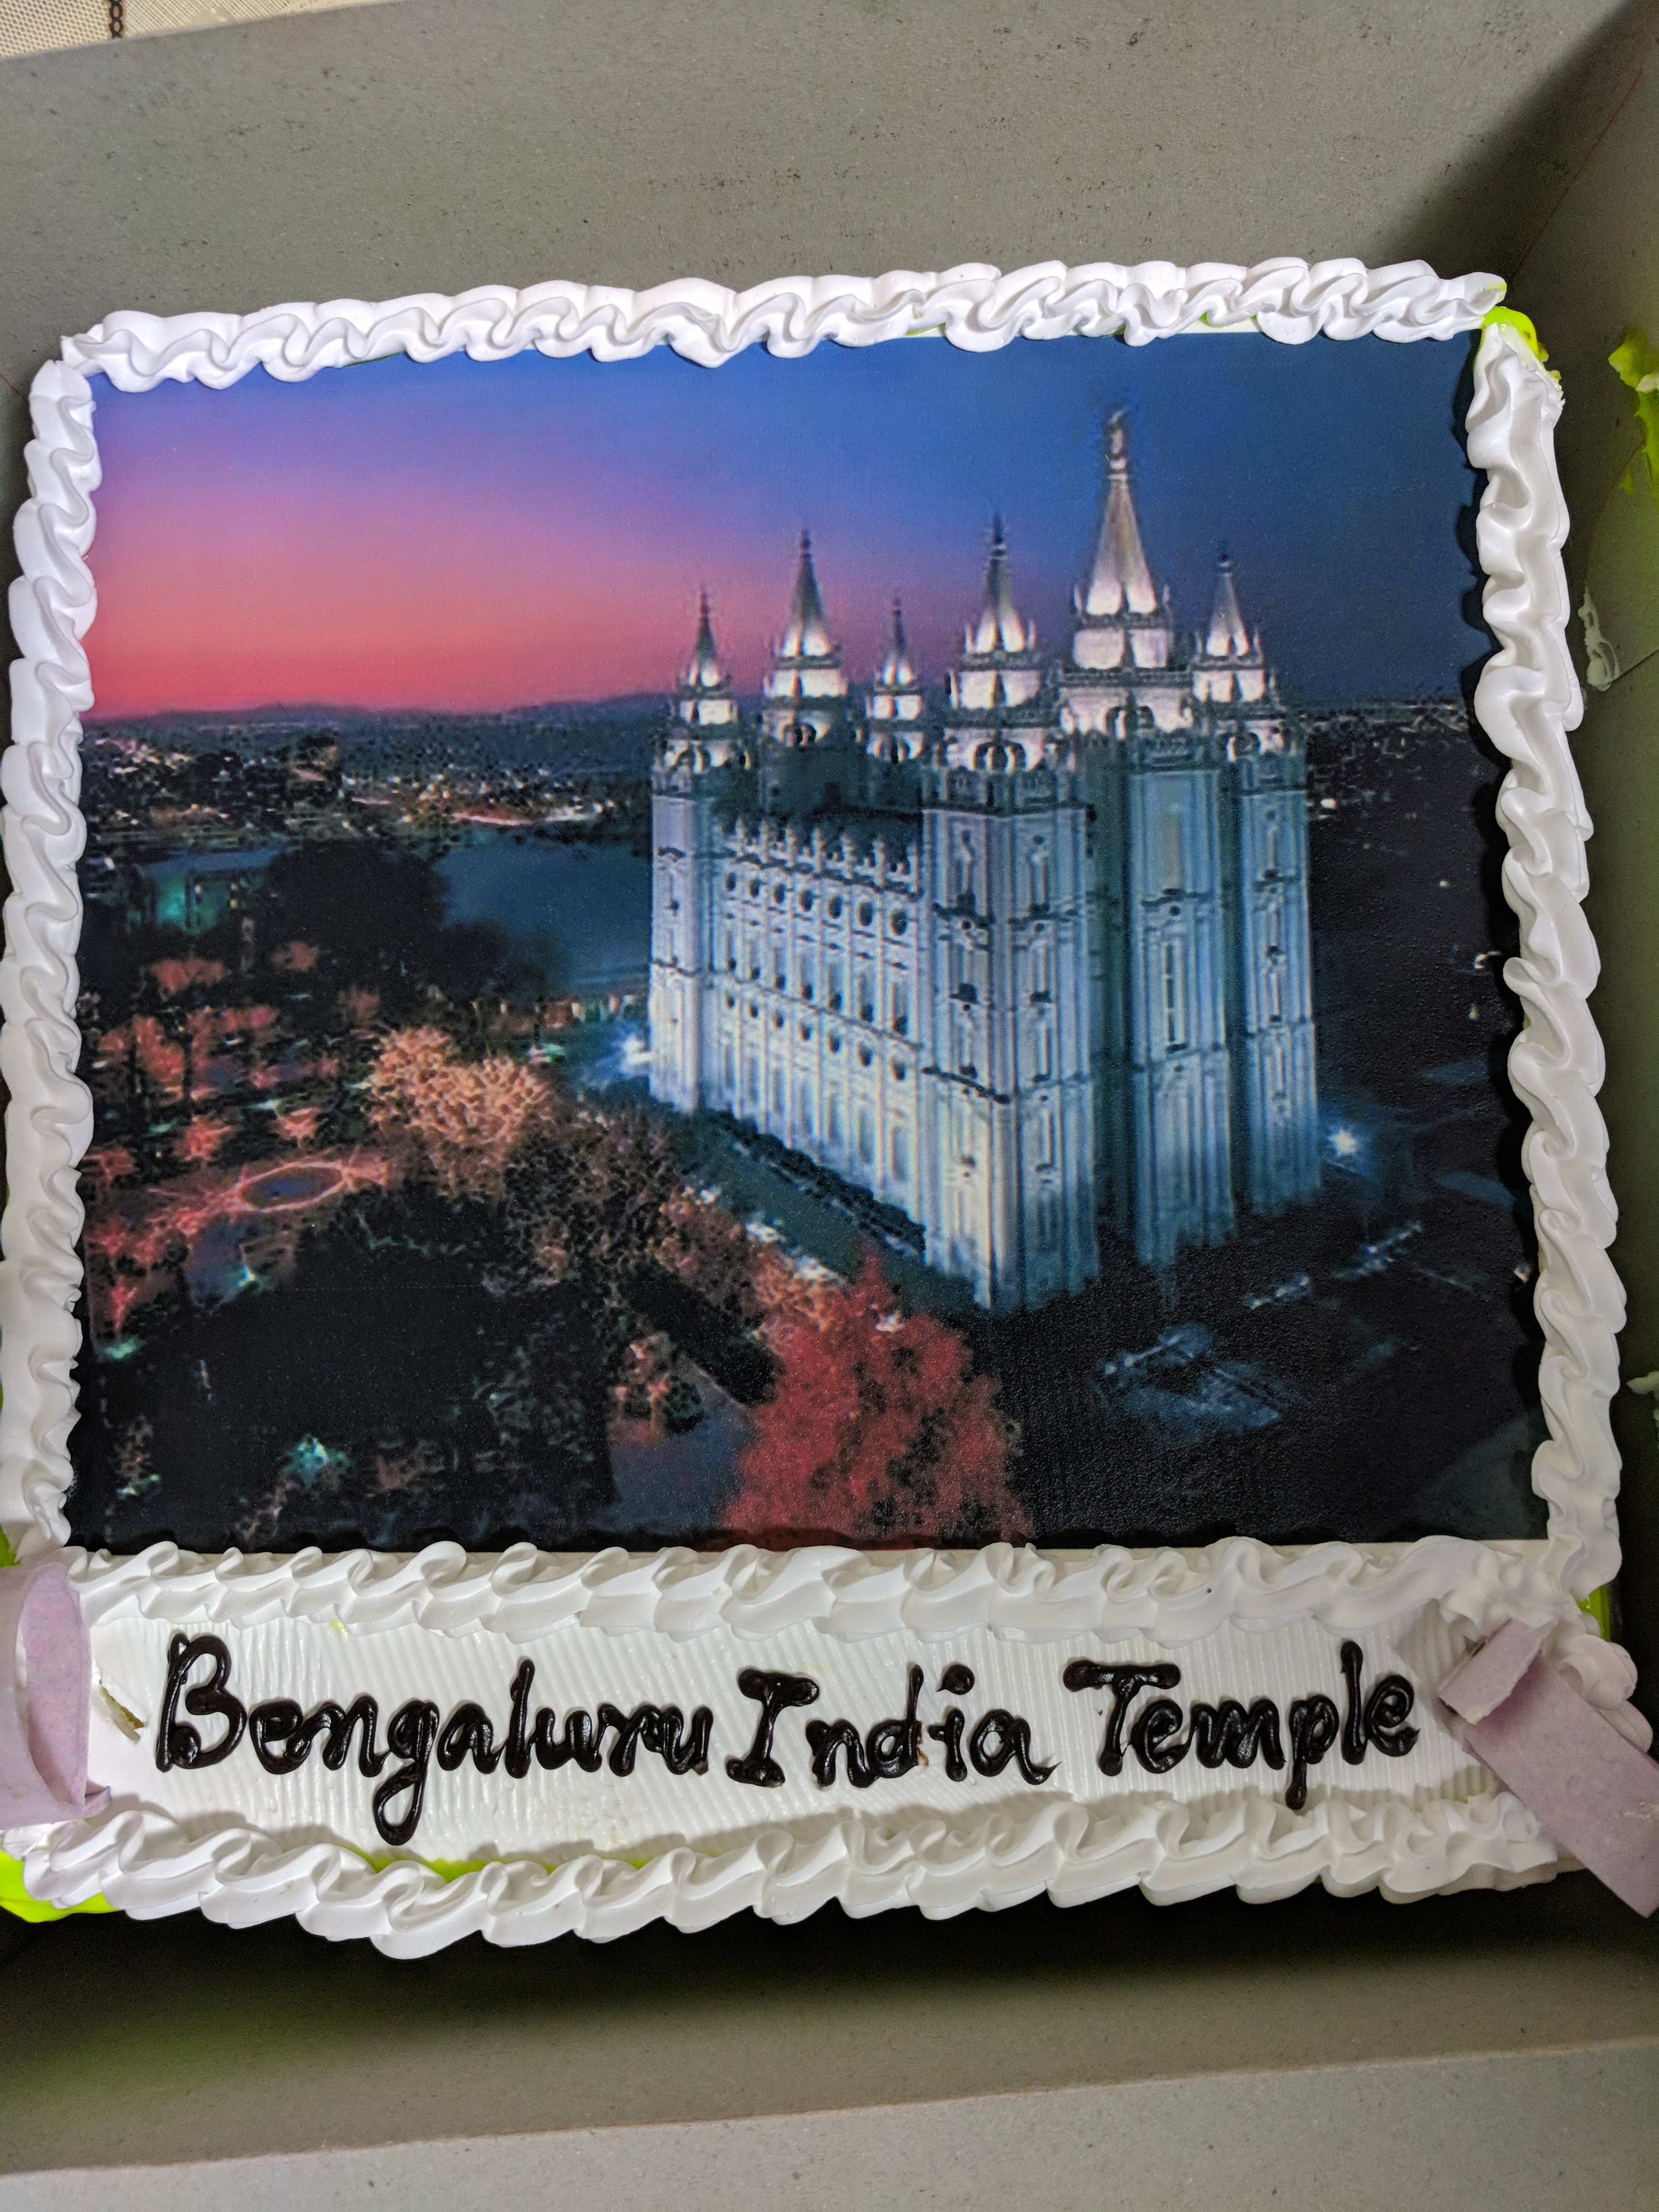 President Bob Anthony, a counselor in the stake presidency in Bengaluru purchased two cakes with pictures of the temple to celebrate the announcement of a temple in India.